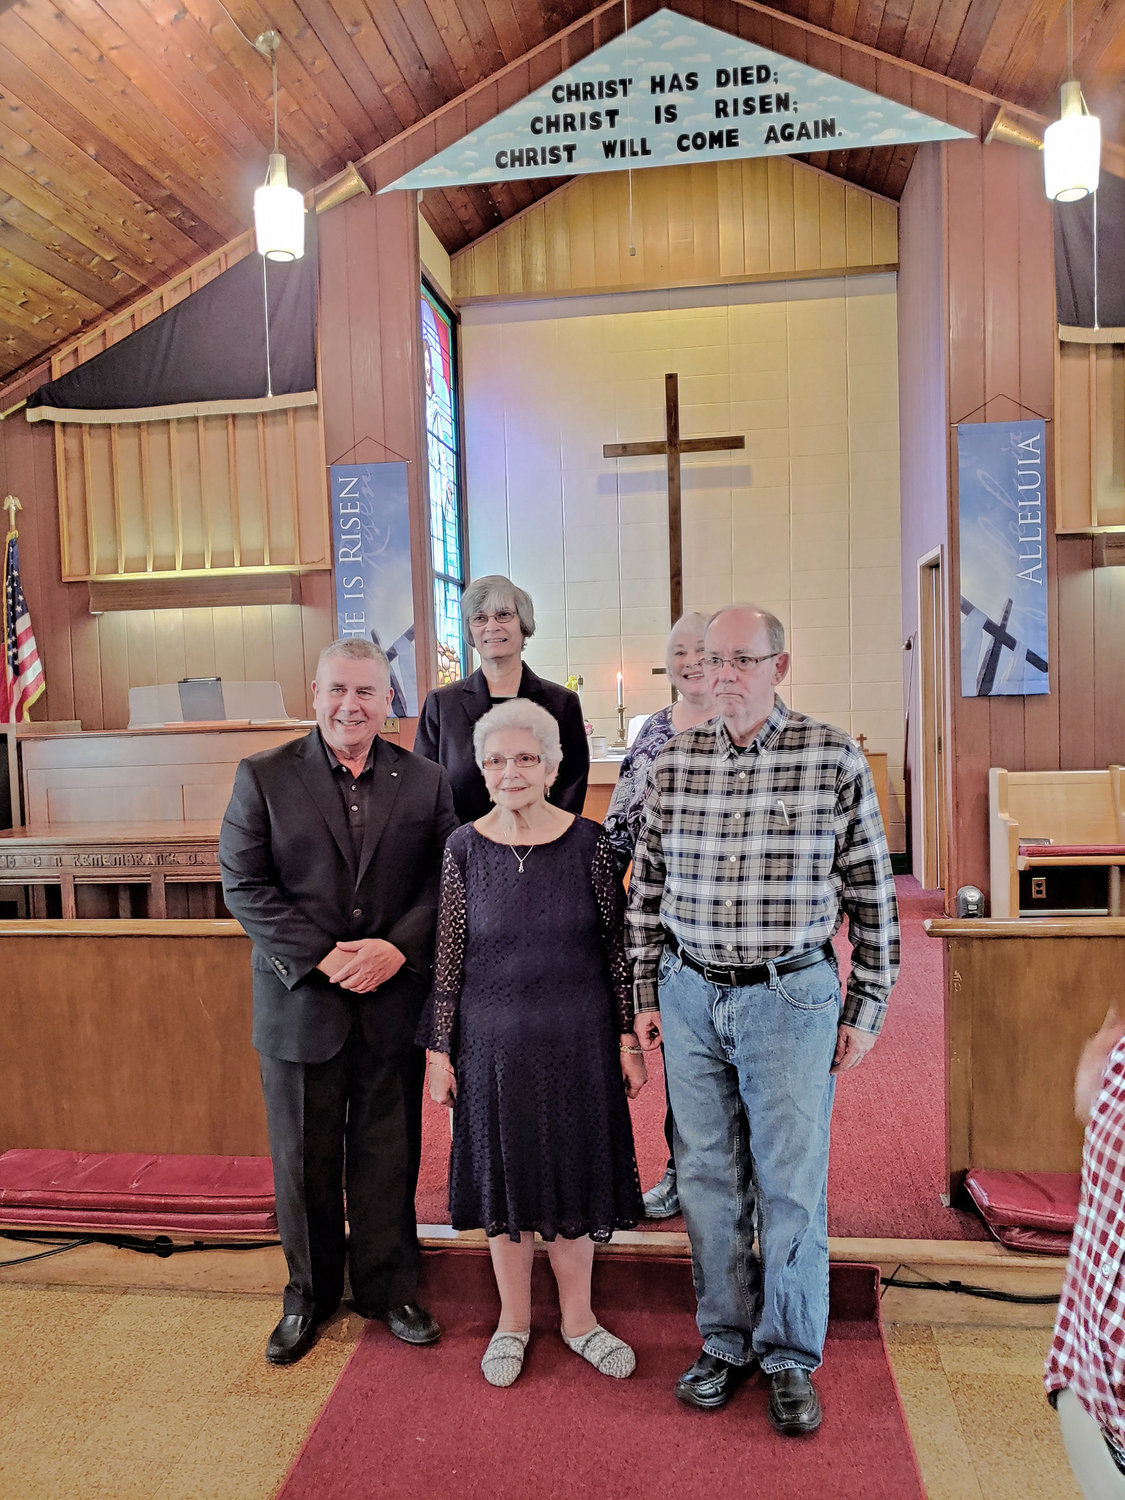 PASTORS' APPRECIATION — Molly Pritchard, in front at center, stands amid some of the pastors with whom she has worked as Delta United Methodist Church's music director and organist; she is retiring. From left: Rev. Robert Wollaber; Rev. Patricia Hubman (in back); Rev. Susan Walters (in back); Rev. Arthur Miner.